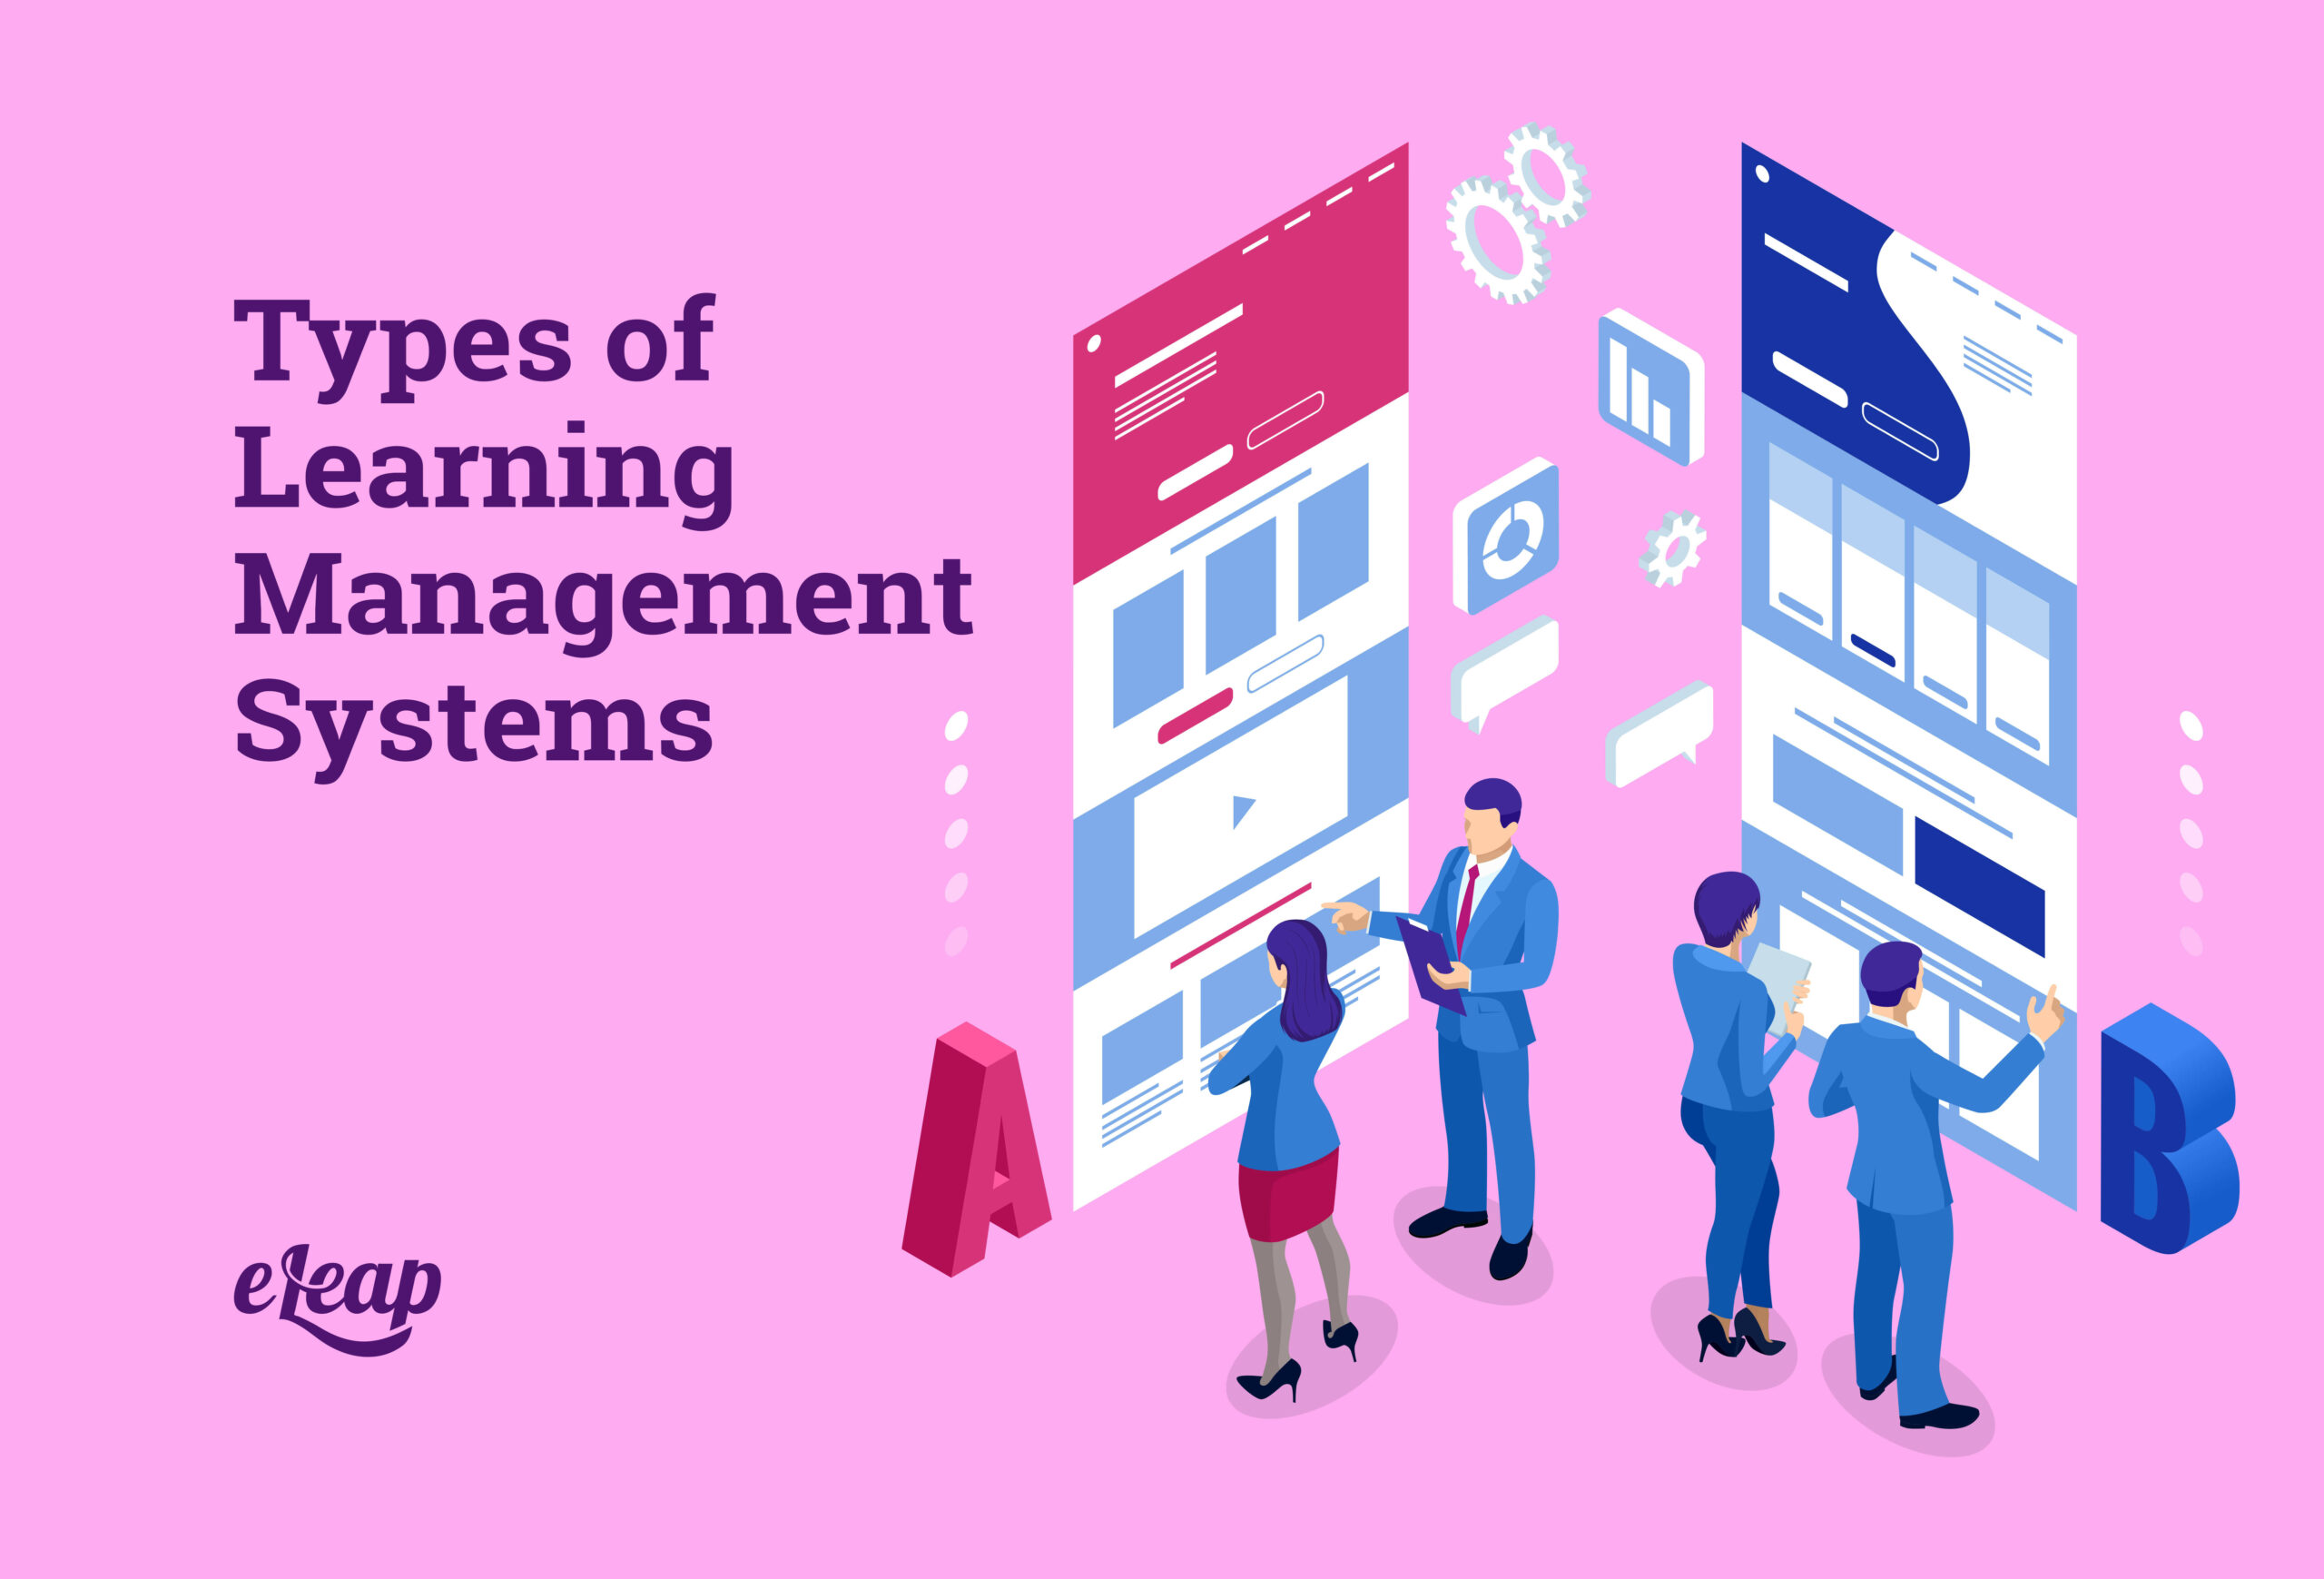 Types of Learning Management Systems